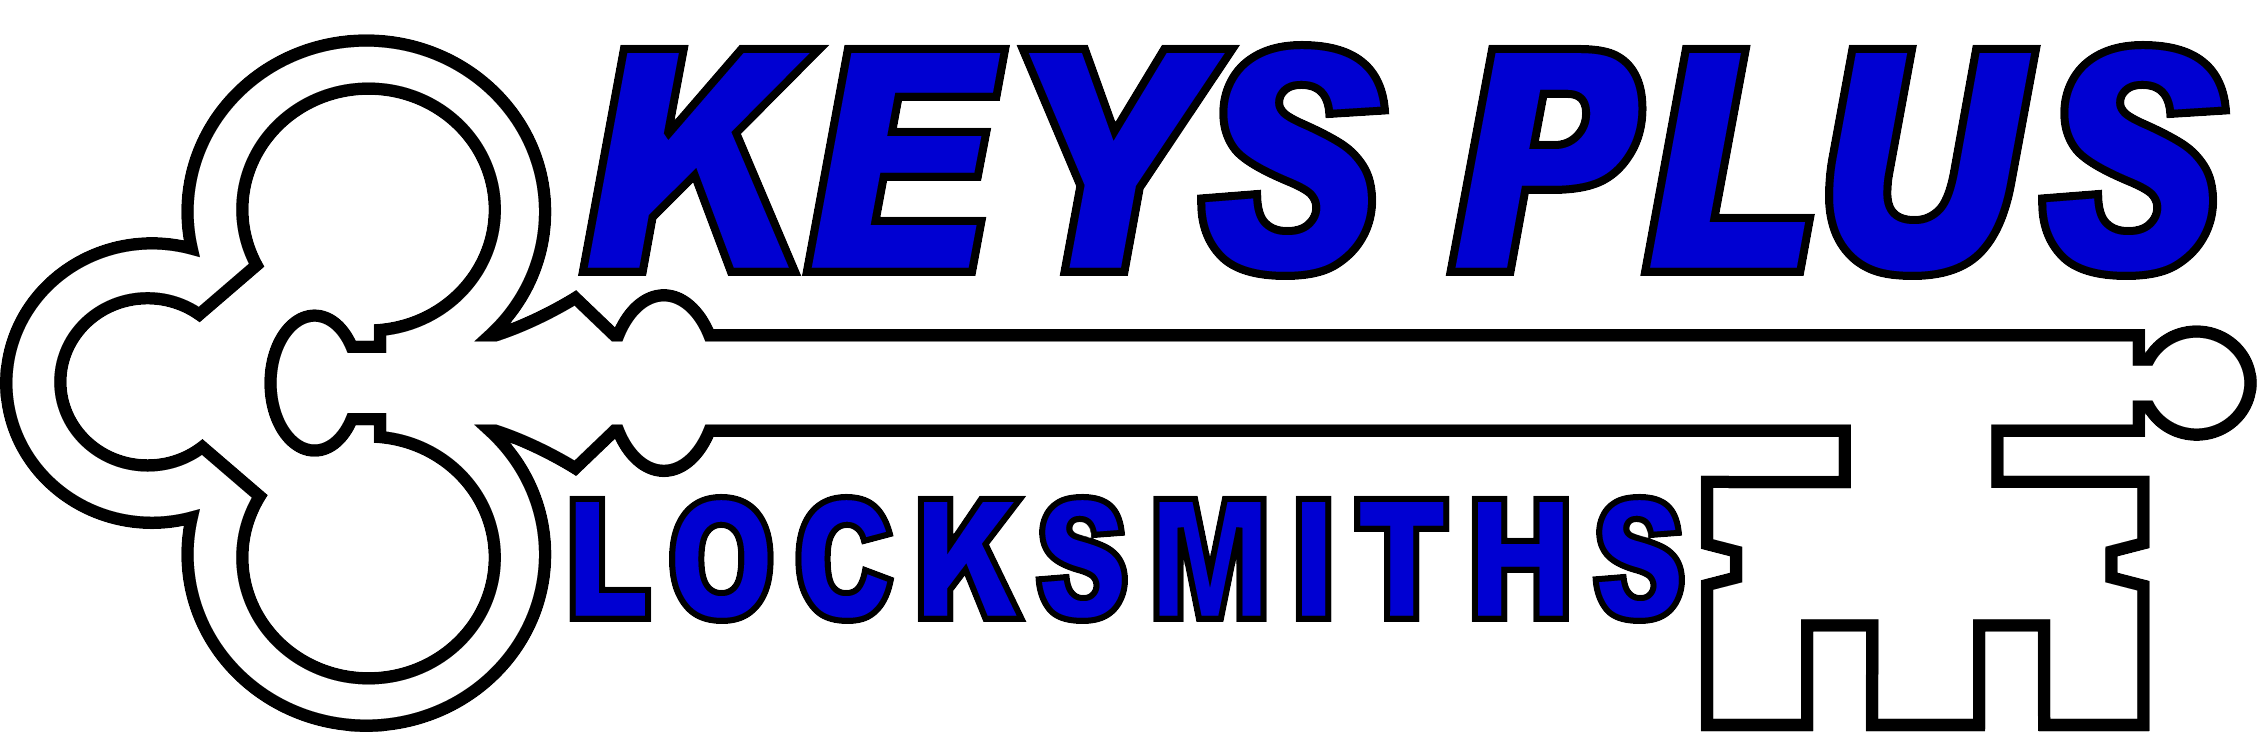 keys plus logo